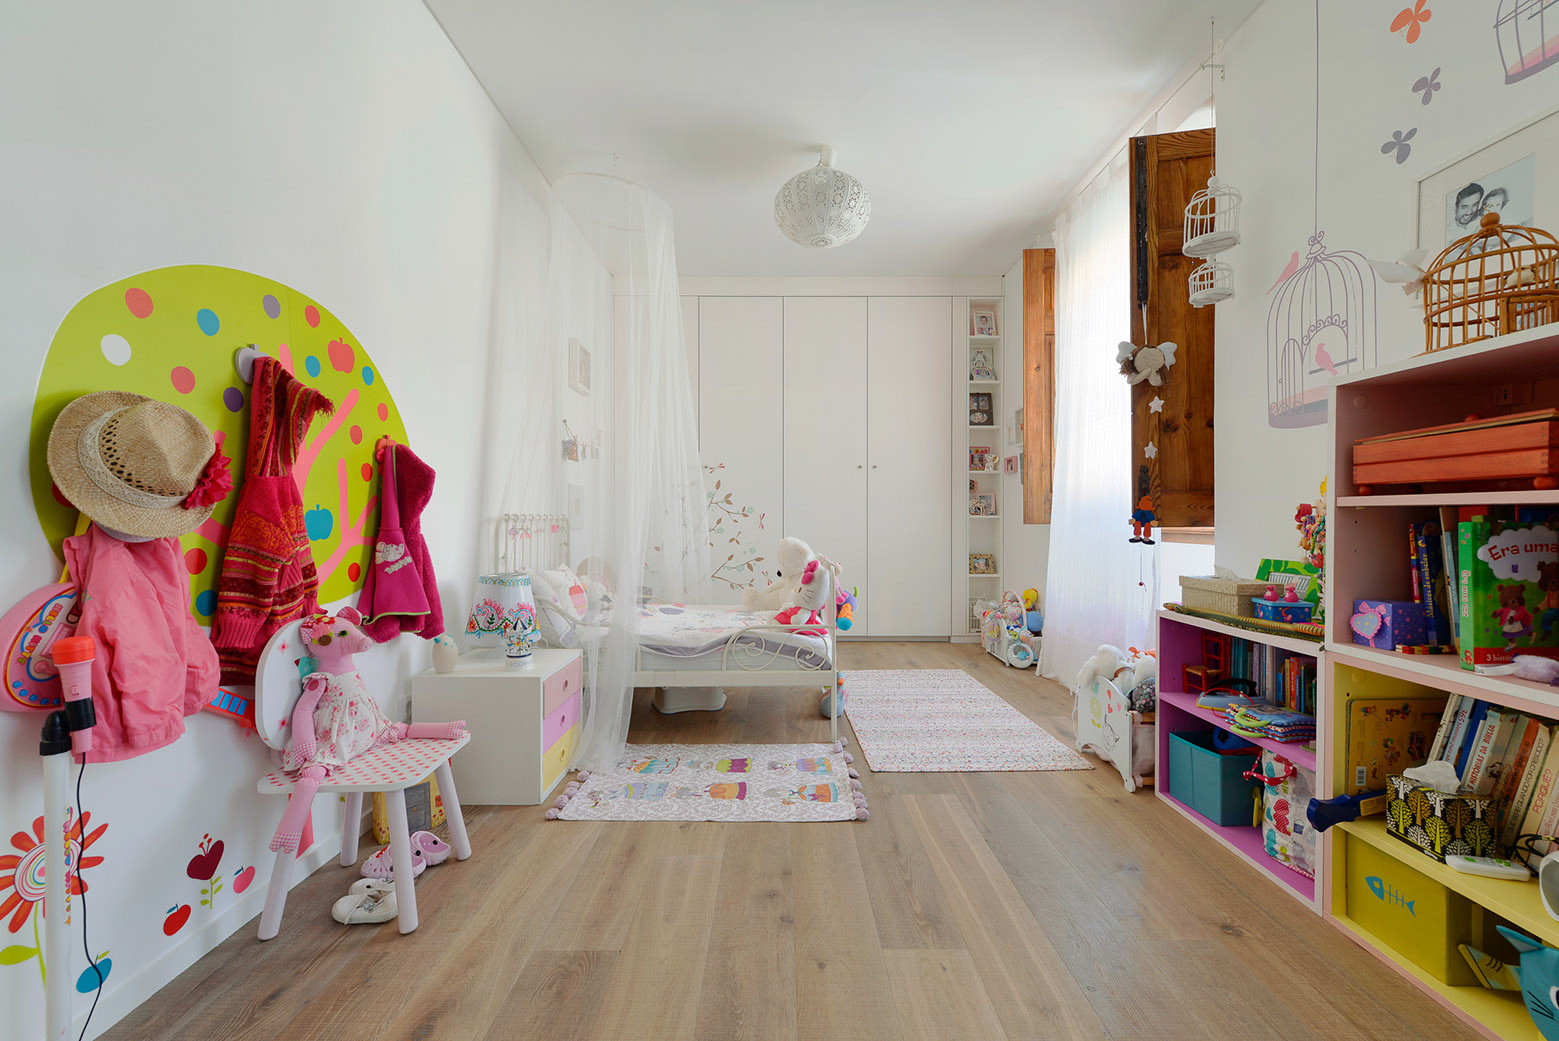 House in Estoril, Ricardo Moreno Arquitectos - Chambre d'enfant